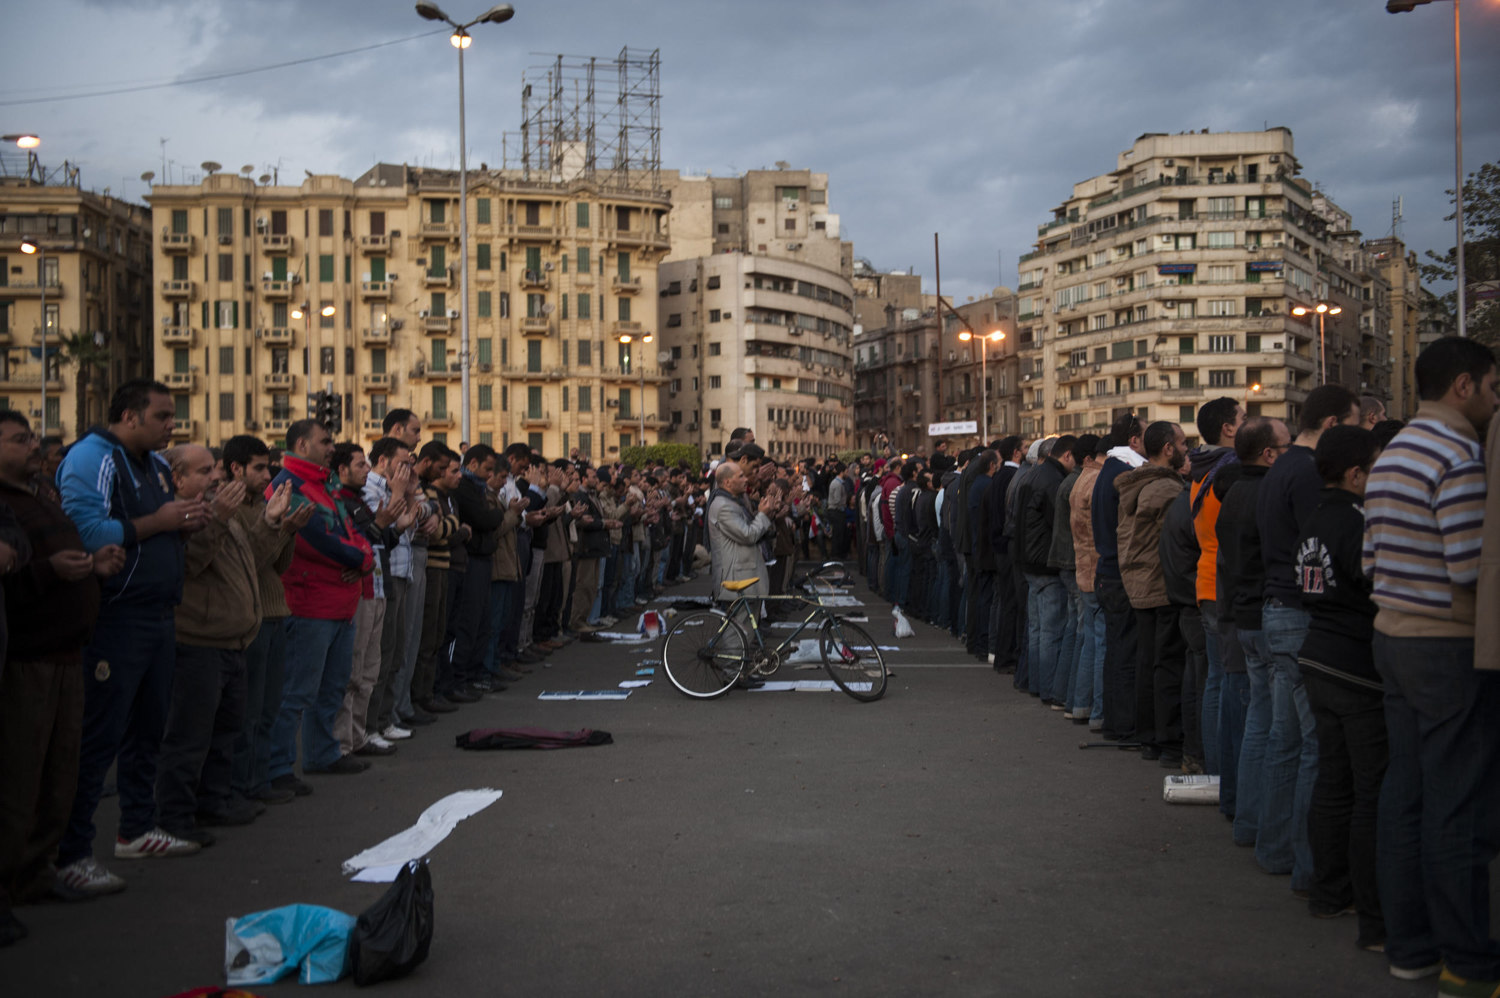 Demonstrators pray during the evening as a peaceful protest against the Mubarak regime in Tahrir Square.